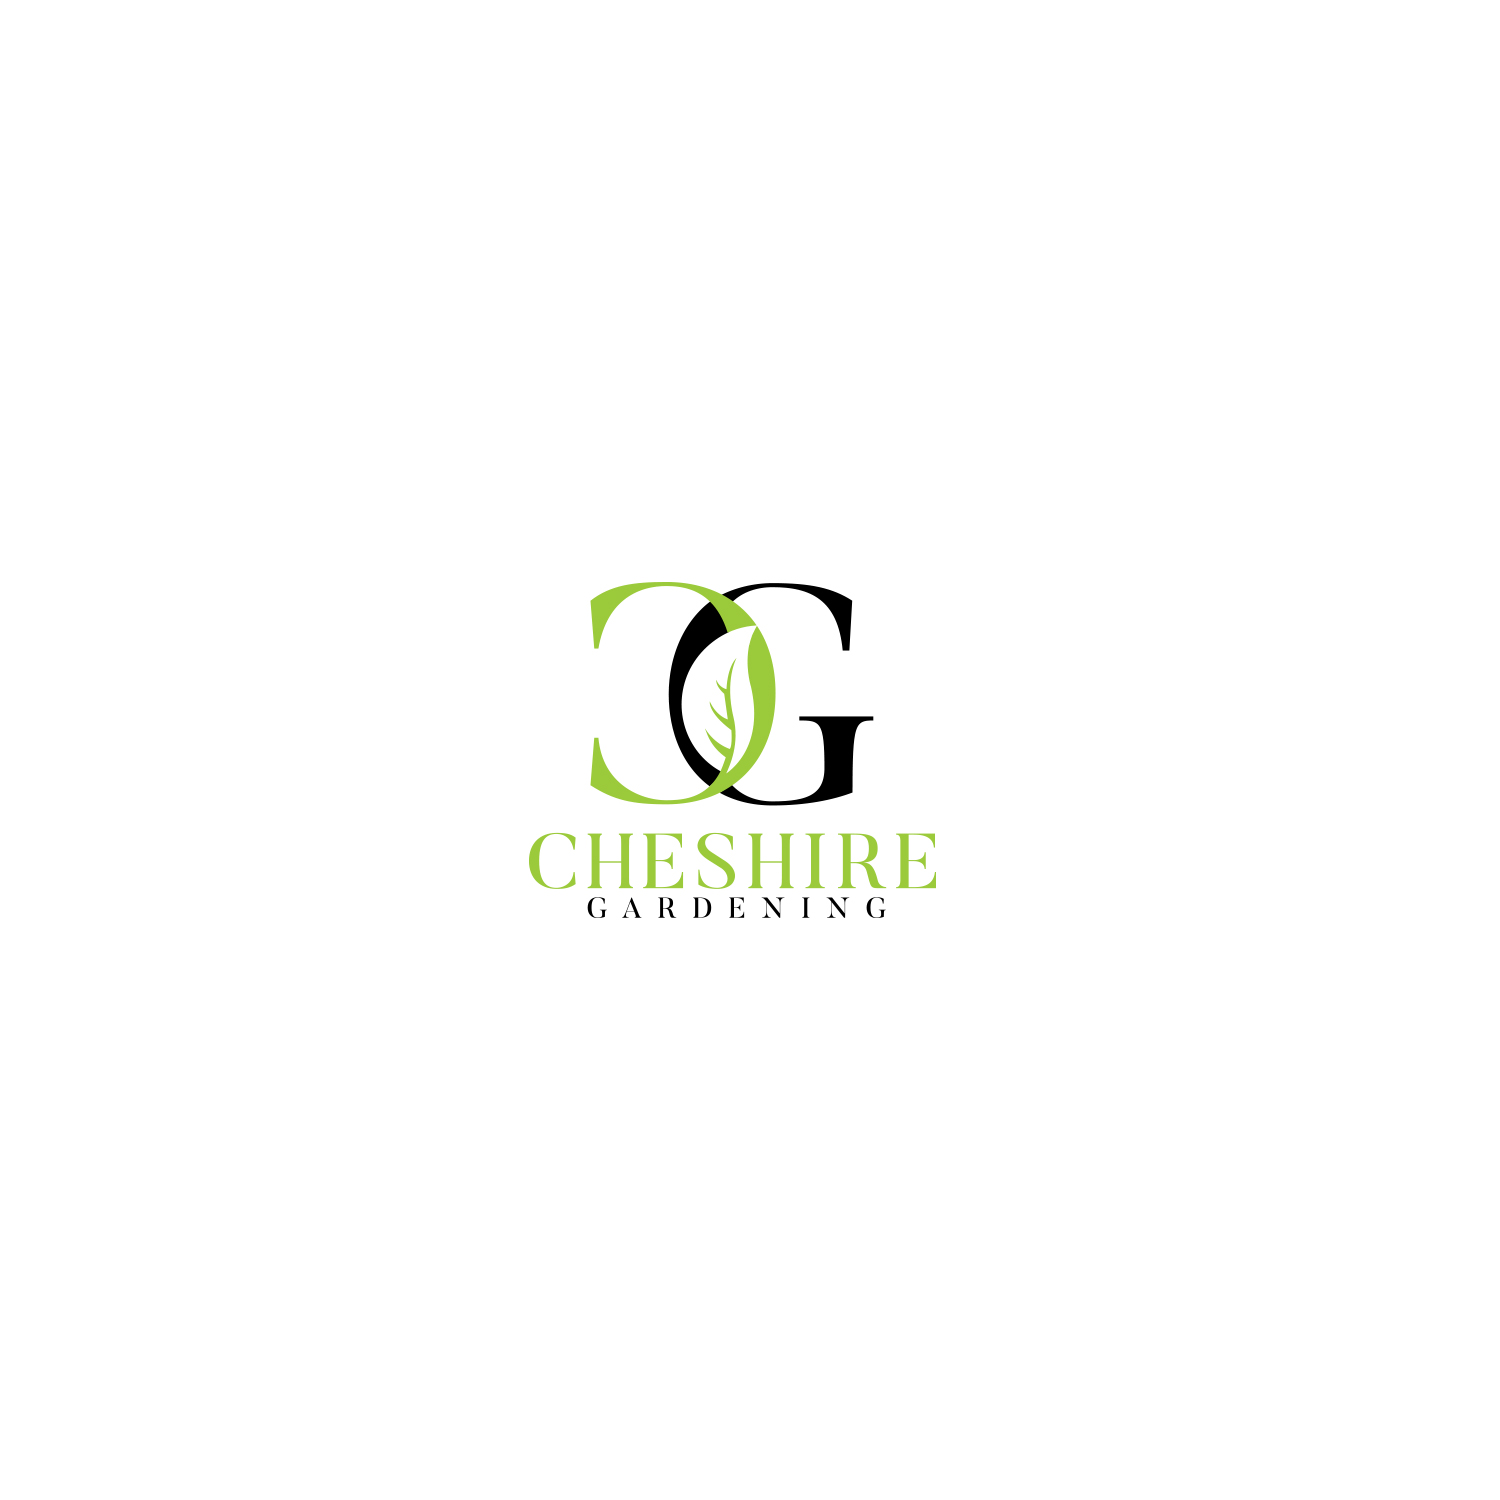 Merveilleux Logo Design By M.CreativeDesigns For The Cheshire Gardening Company Ltd |  Design #15087251